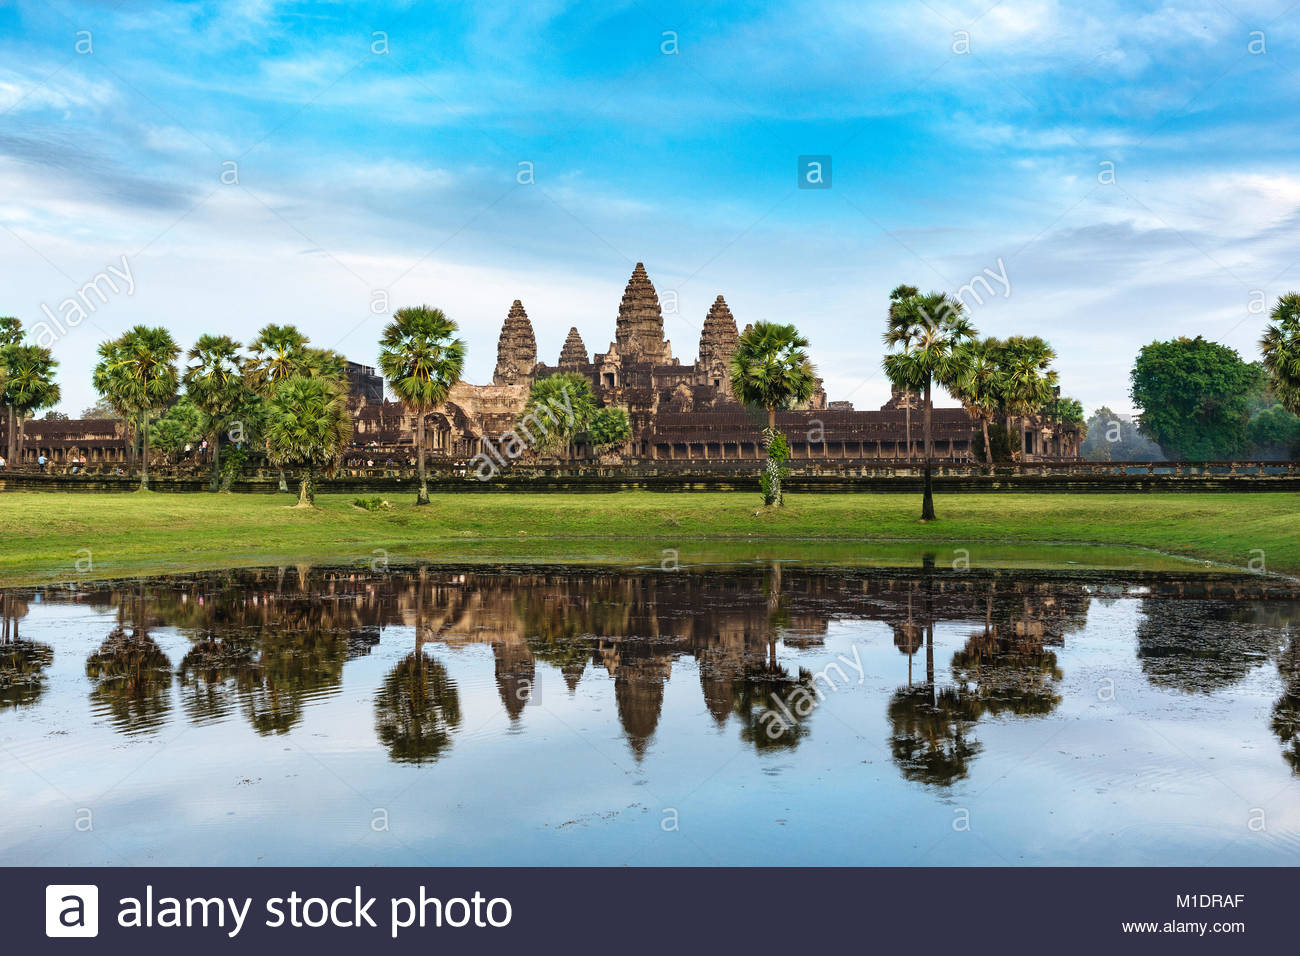 Angkor Wat Photo Stock